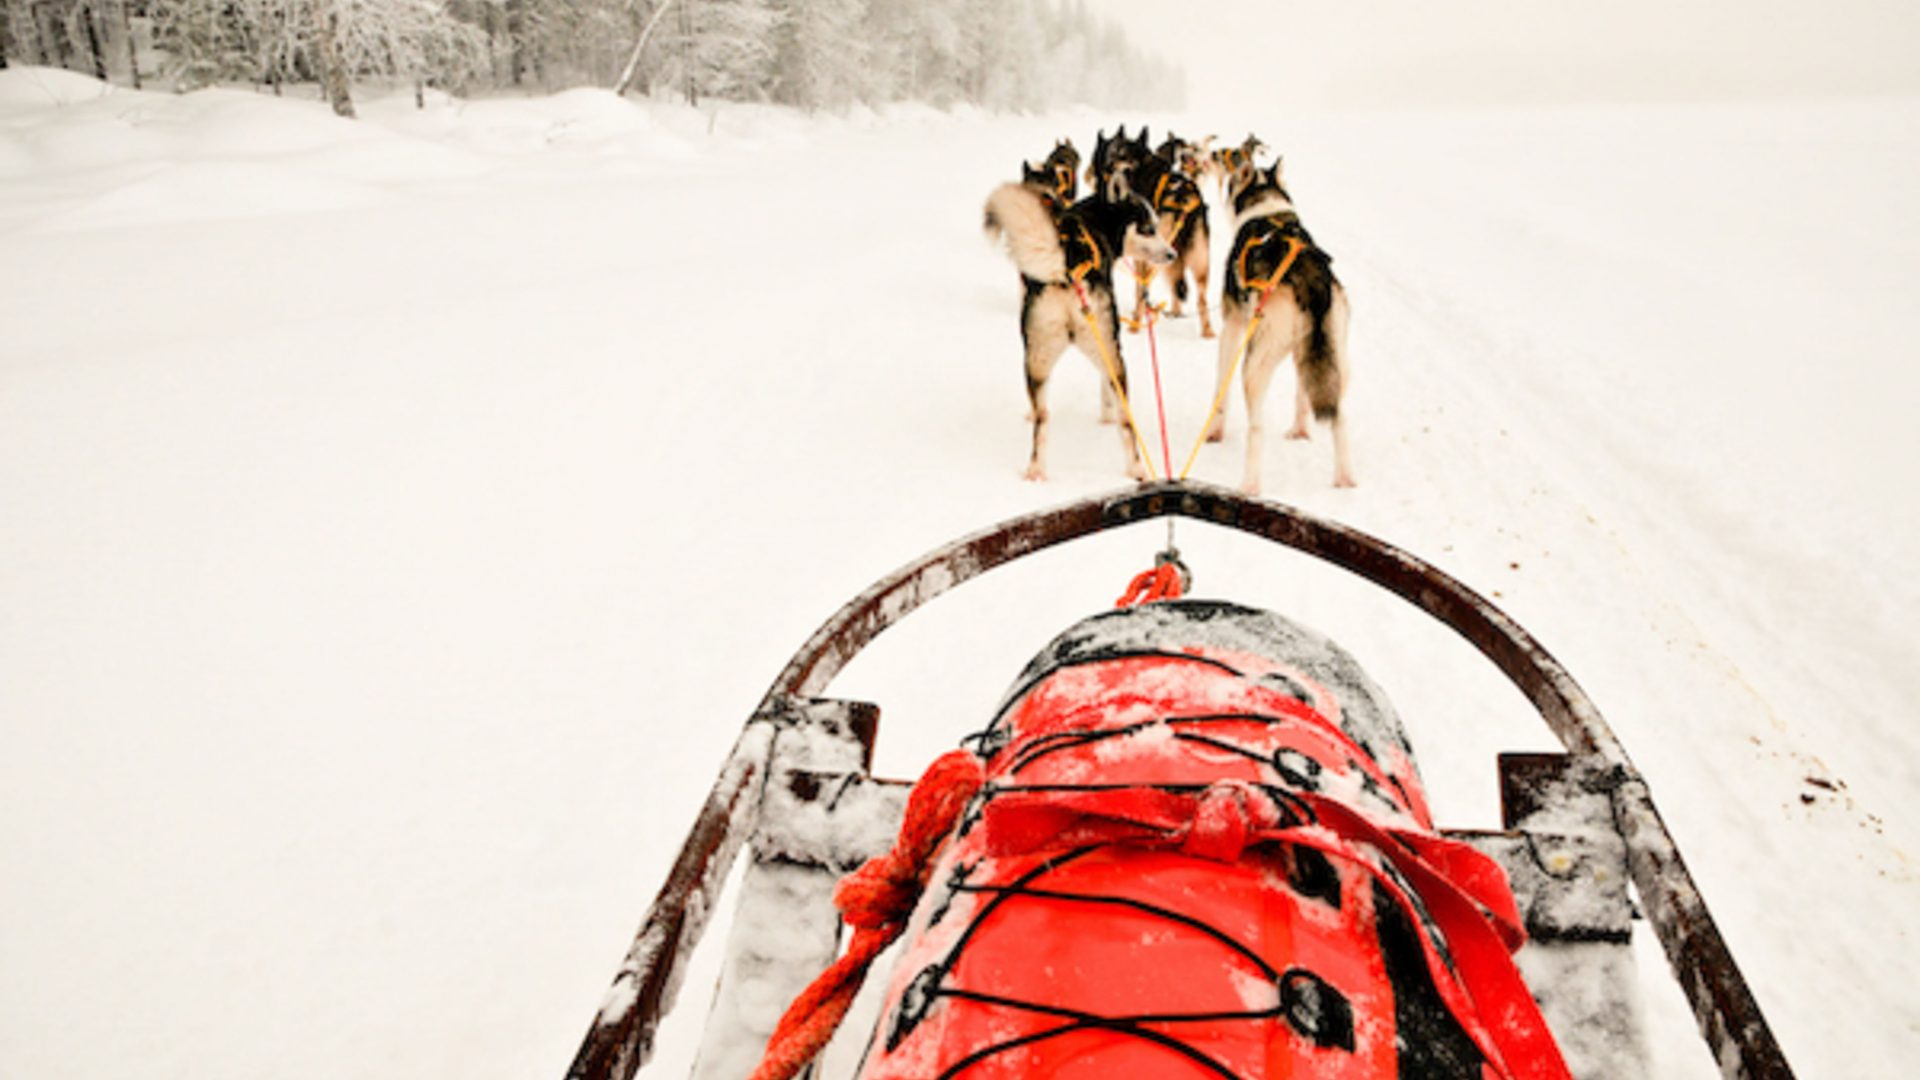 Dogs pull a sled through Arctic snow.